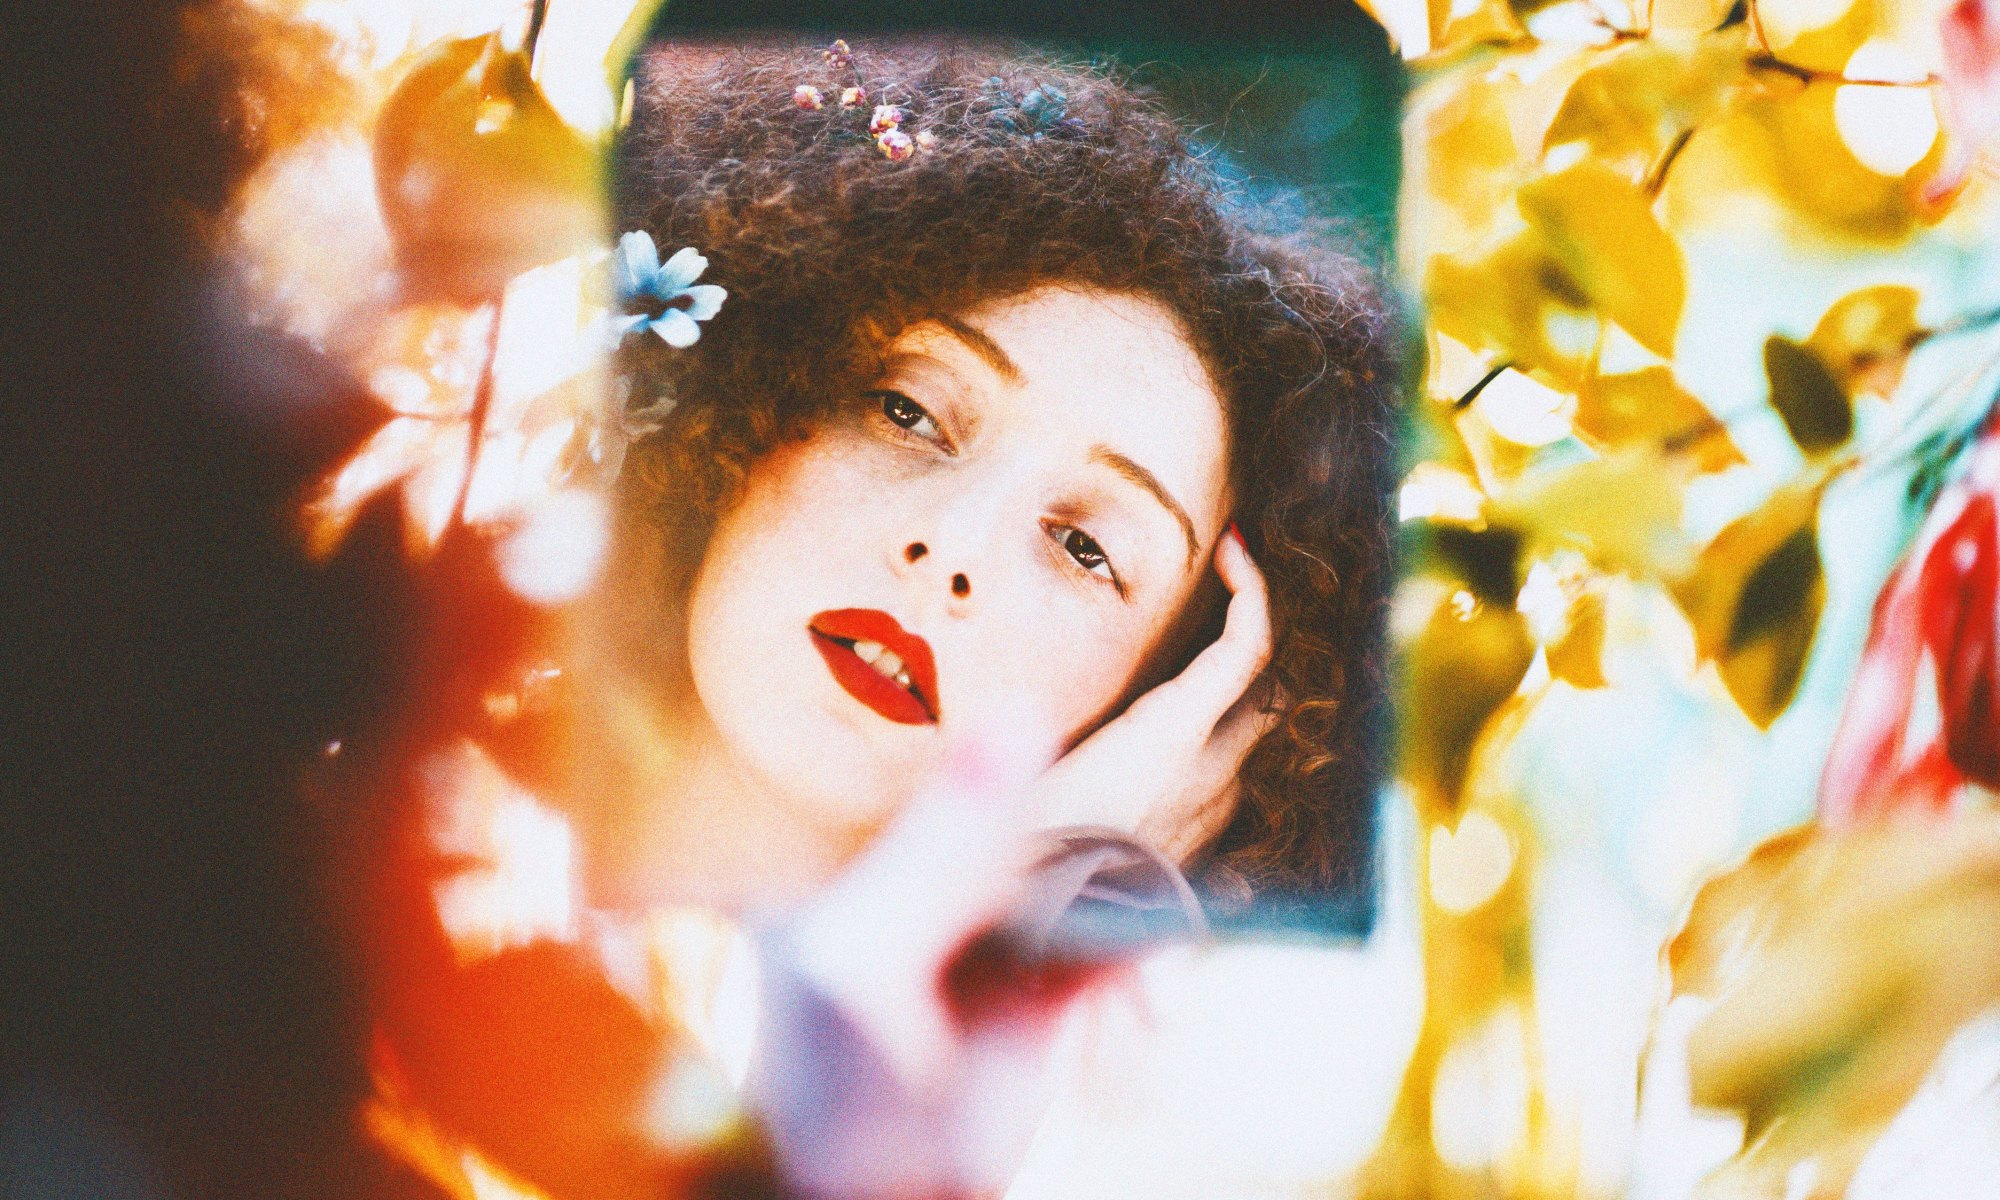 Brunette woman with red lipstick performing mirror meditation